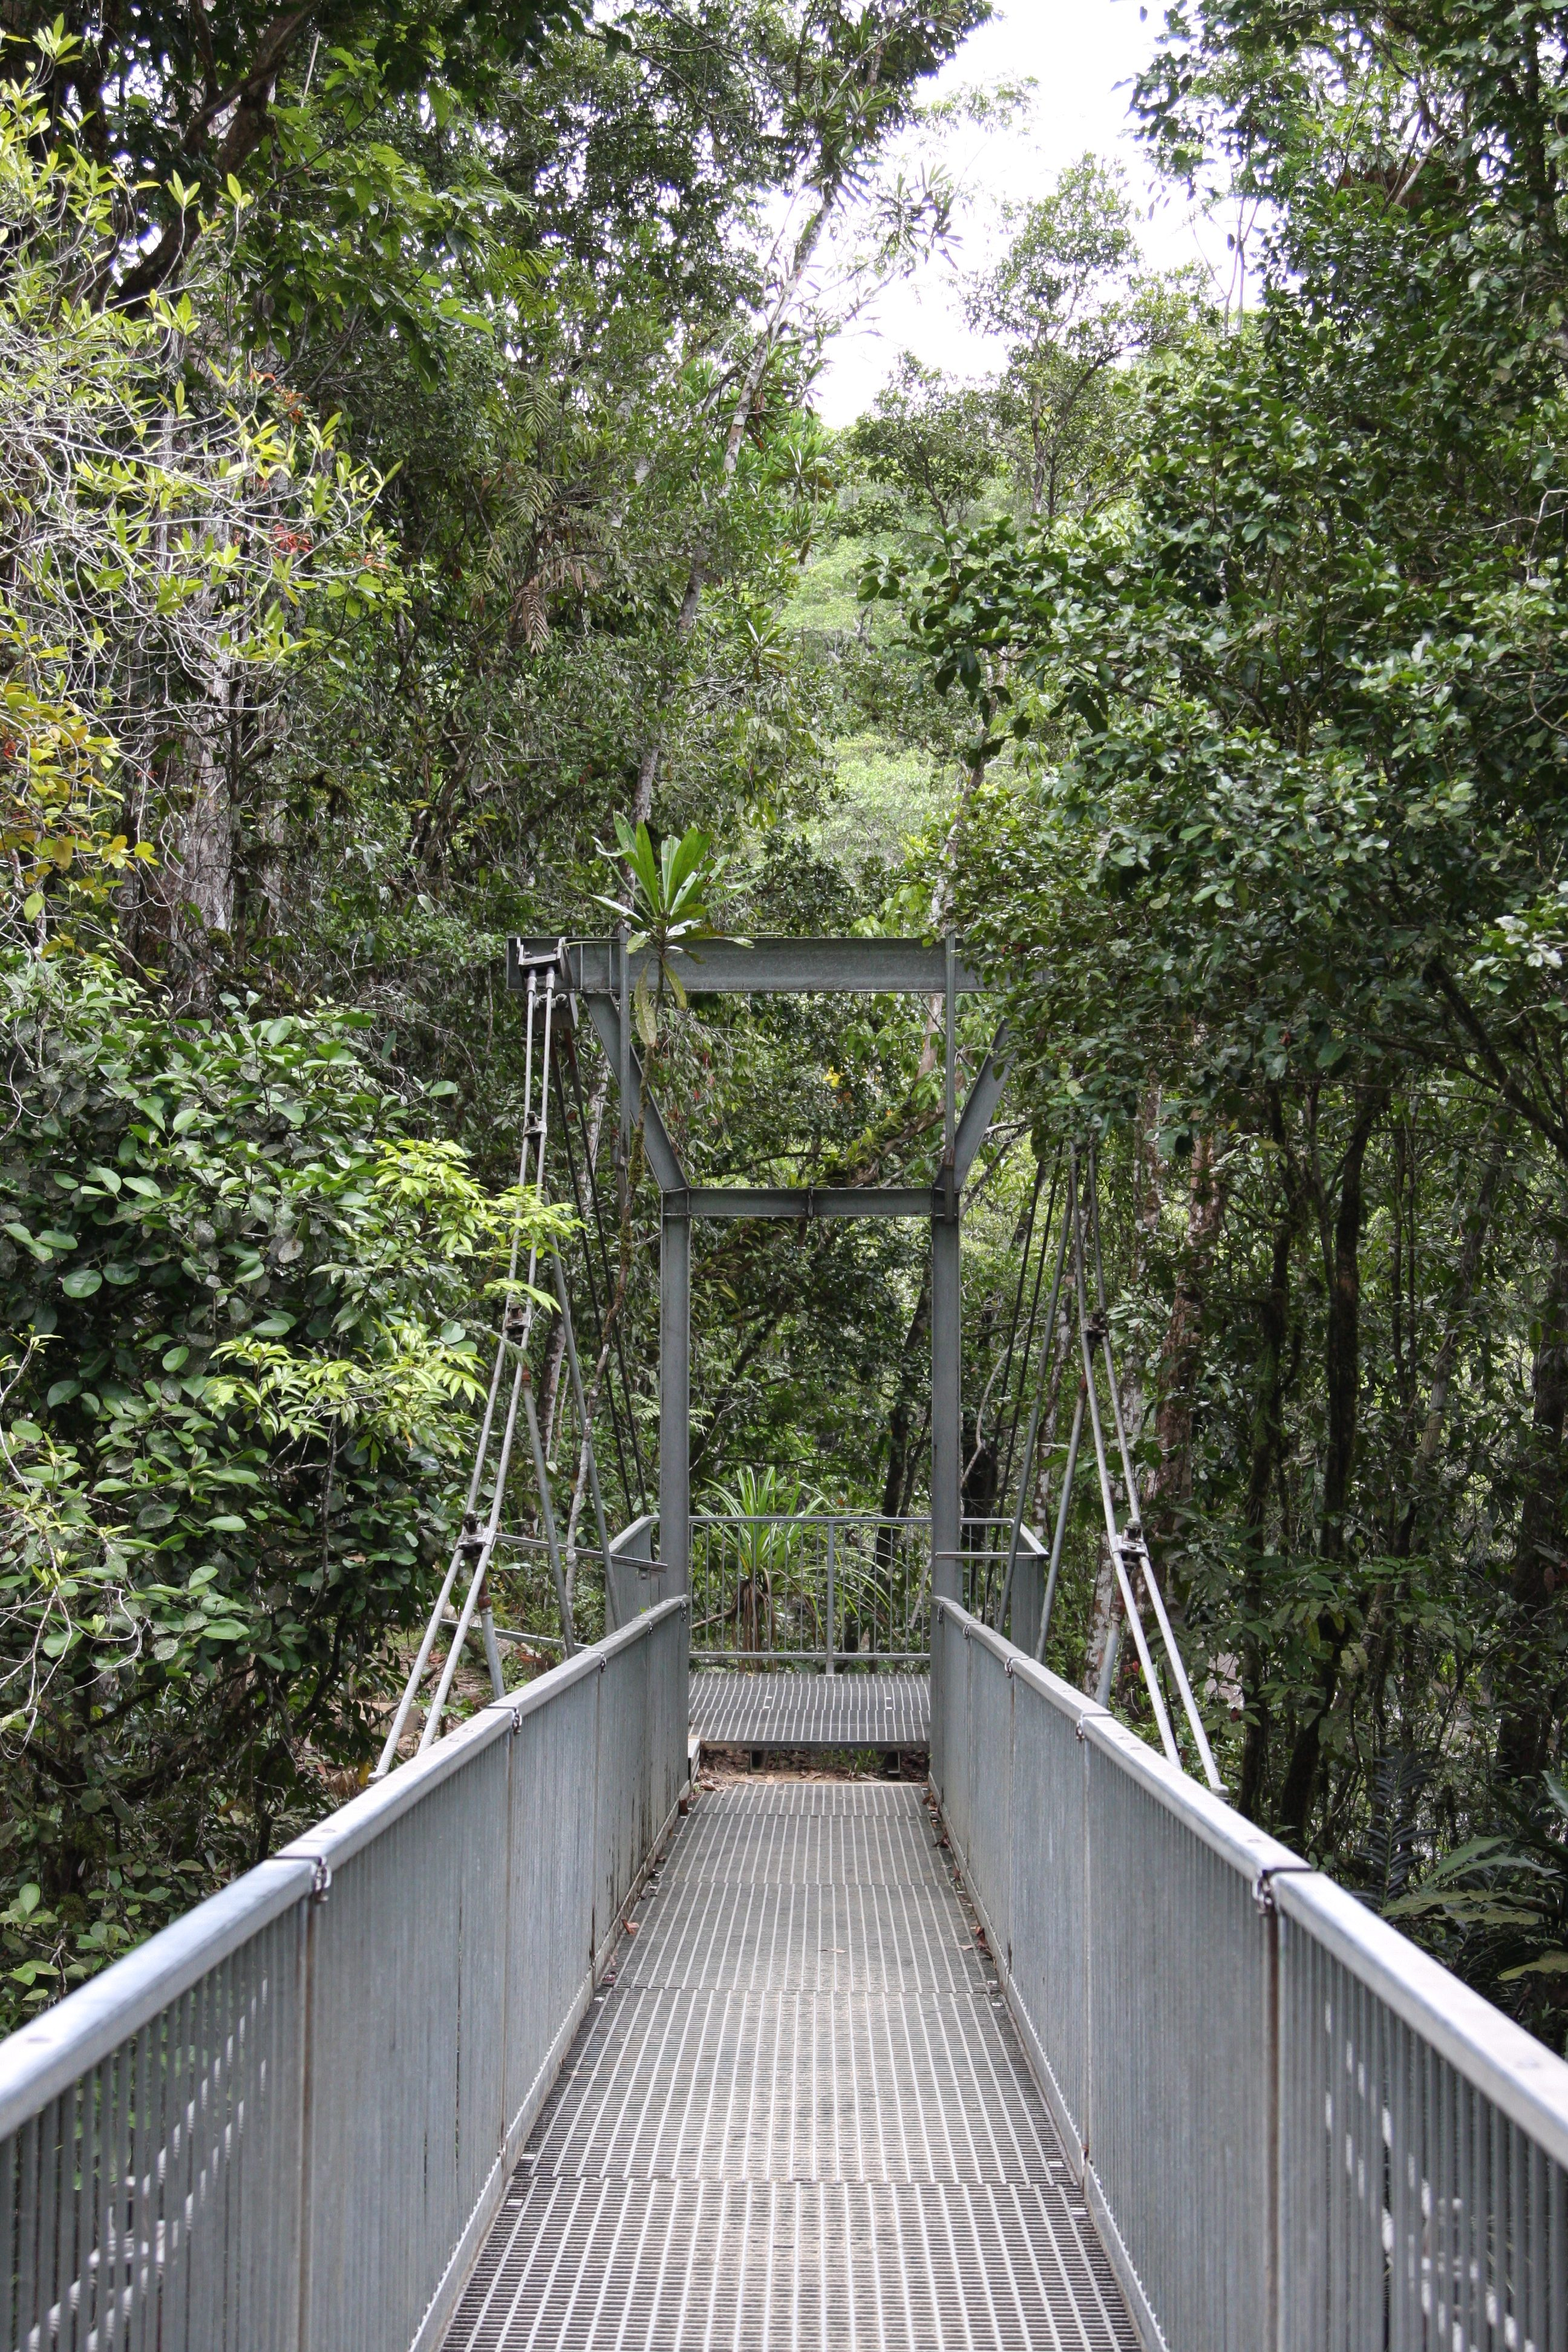 metal suspension bridge at the Mossman Gorge in the Daintree Rainforest